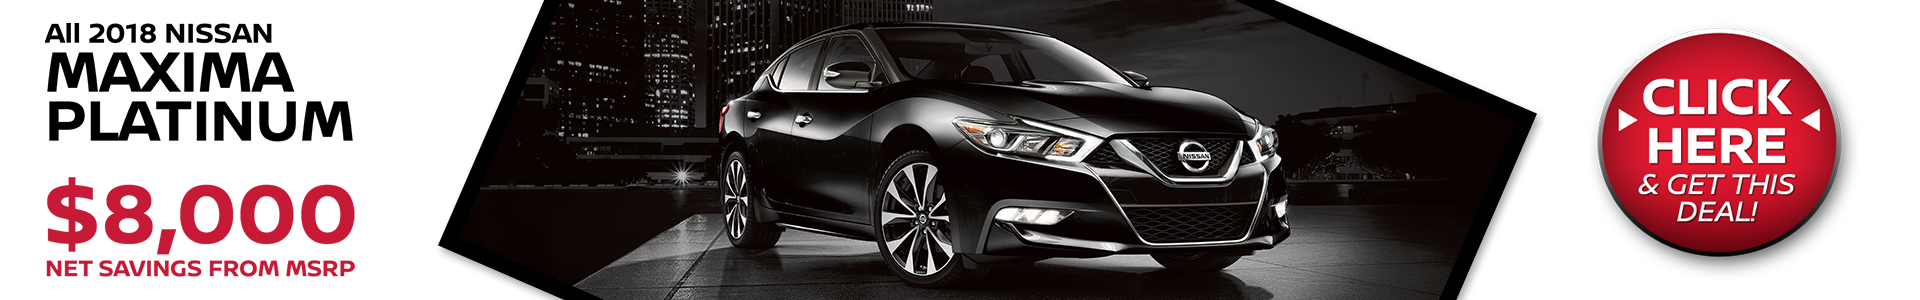 Mossy Nissan - Nissan Maxima $8,000 Off MSRP